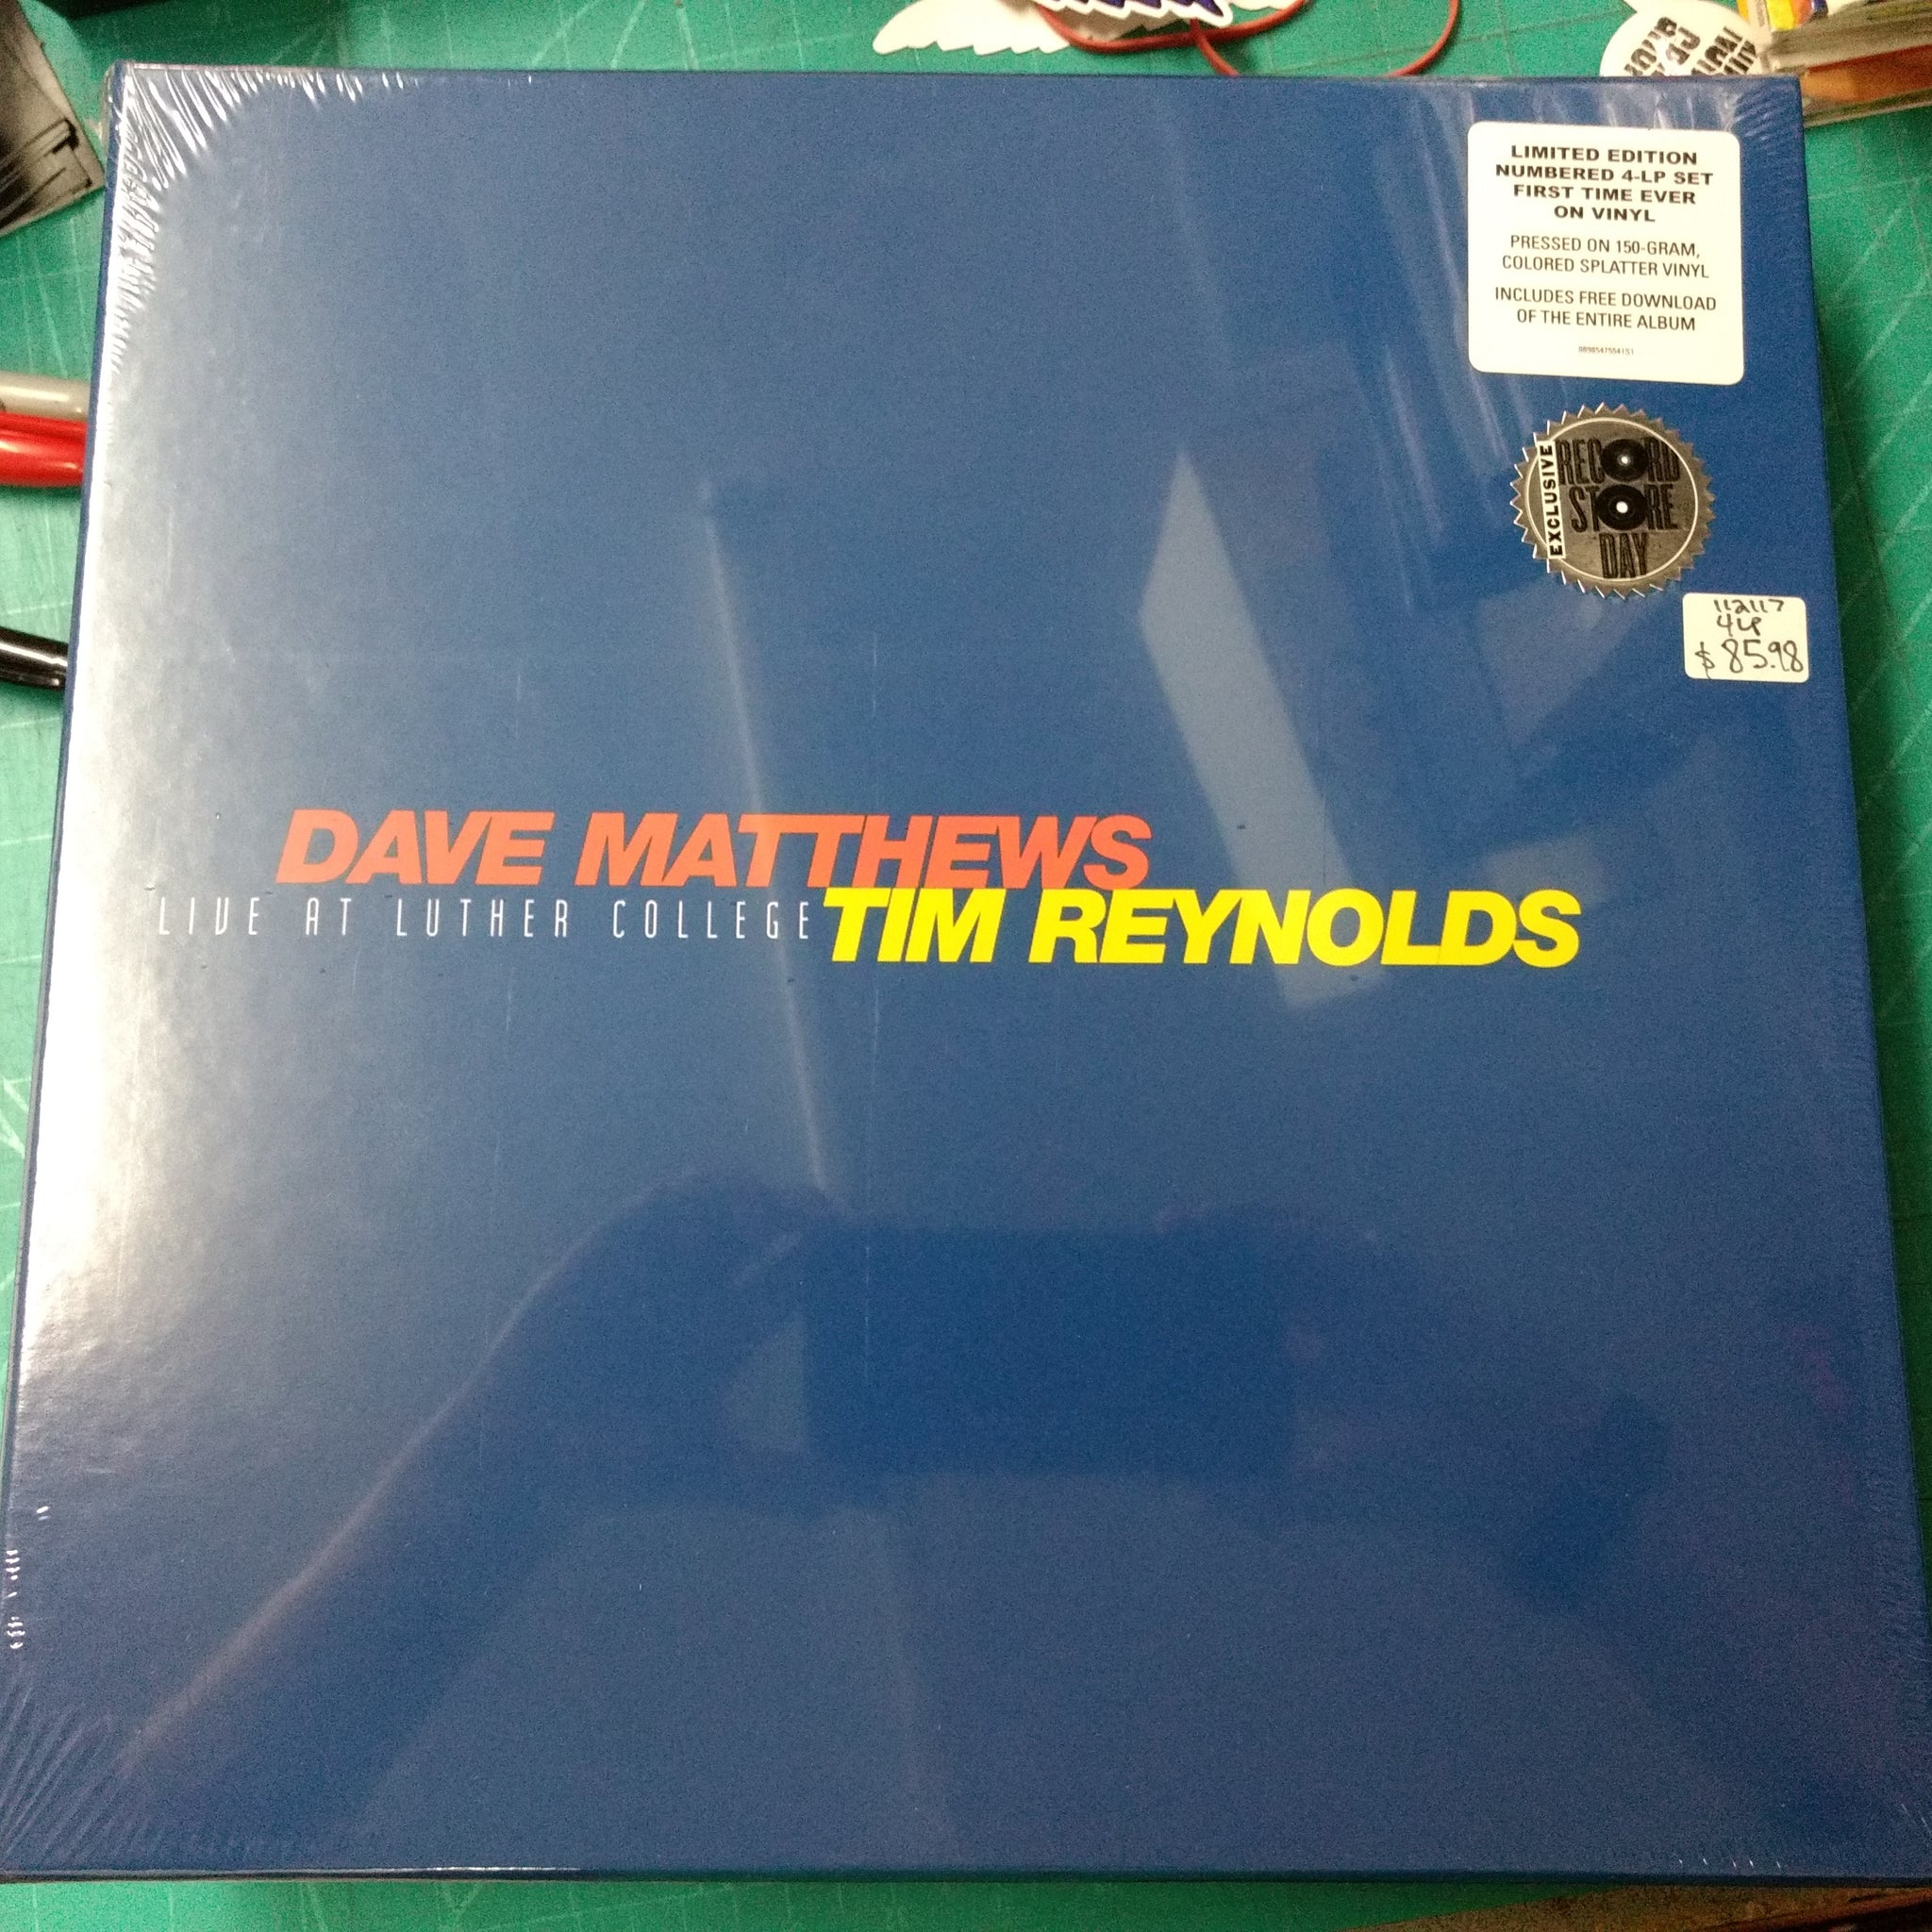 Dave Matthews & Tim Reynolds - Live at Luther College 4LP